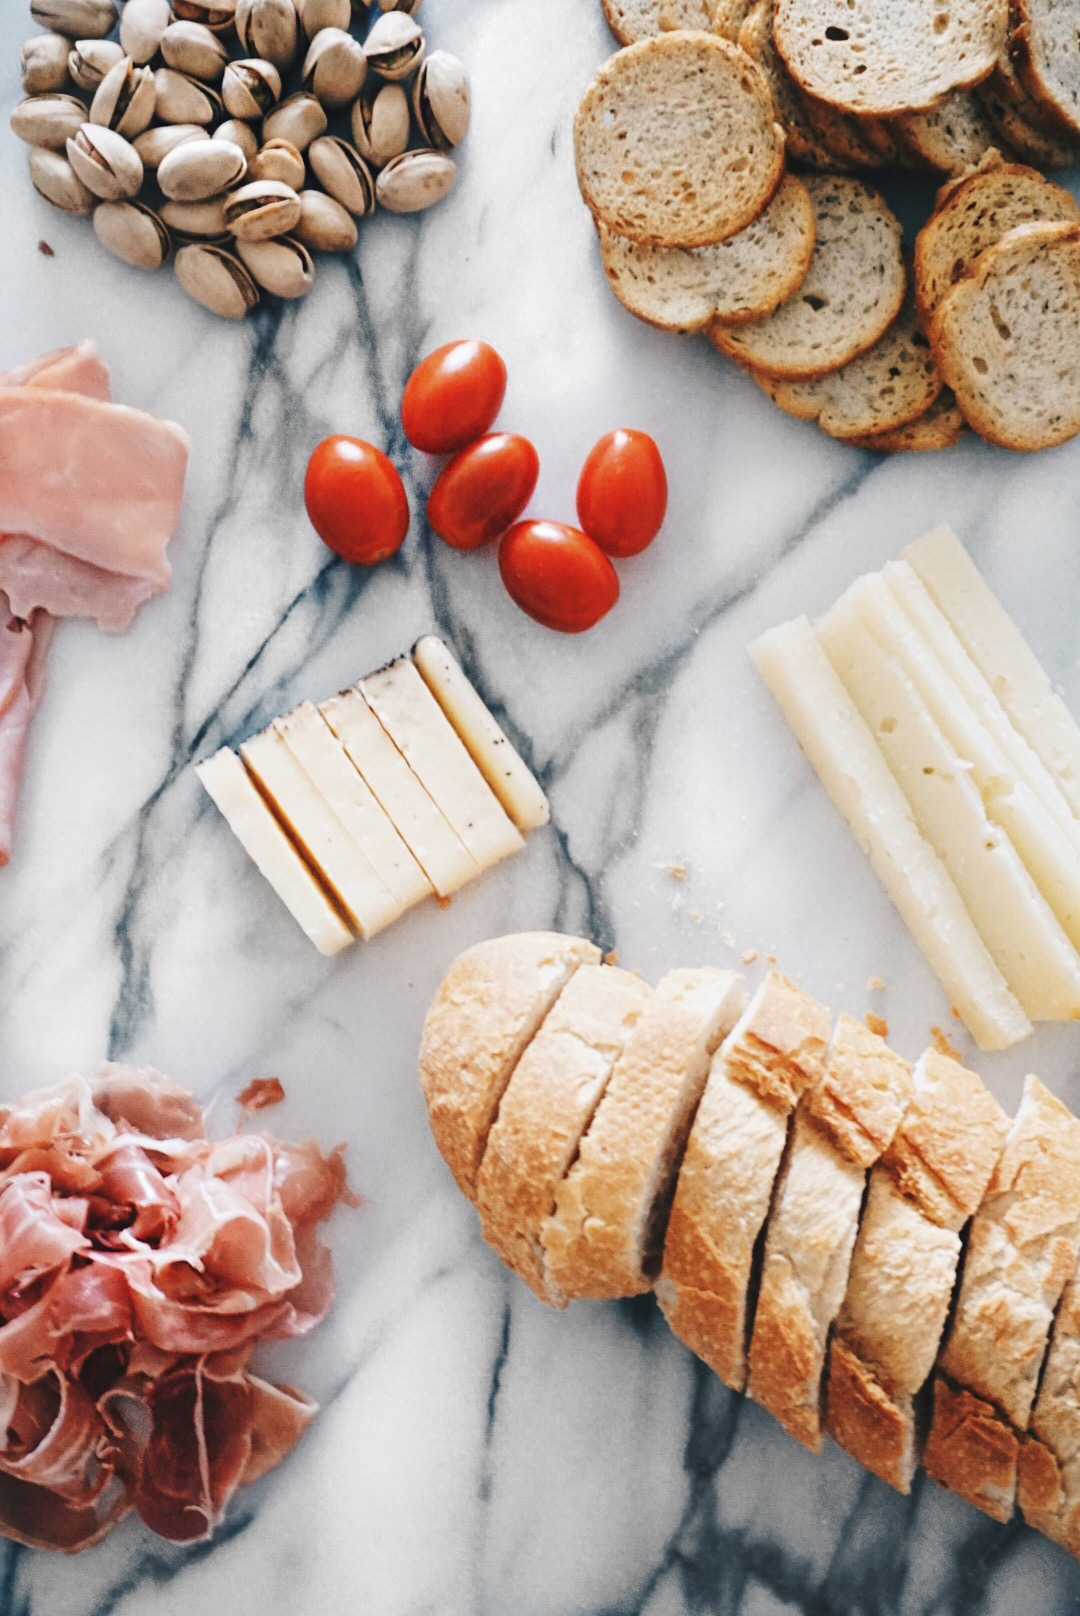 Sugar Love Chic blogger Krista Perez shares how to make a charcuterie board